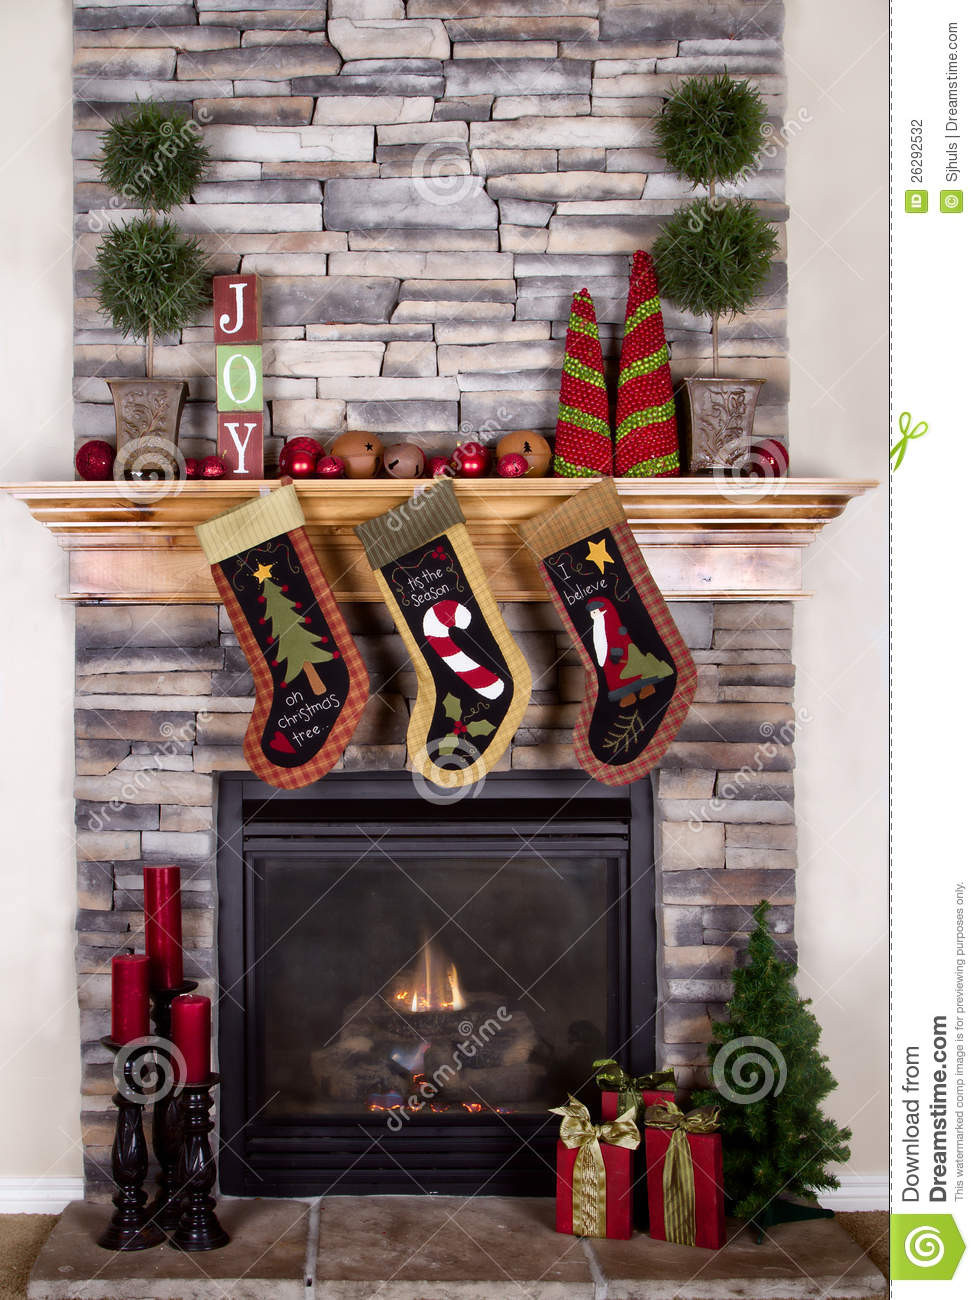 Christmas Sock Fireplace  Christmas Stockings Hanging From Fireplace Stock